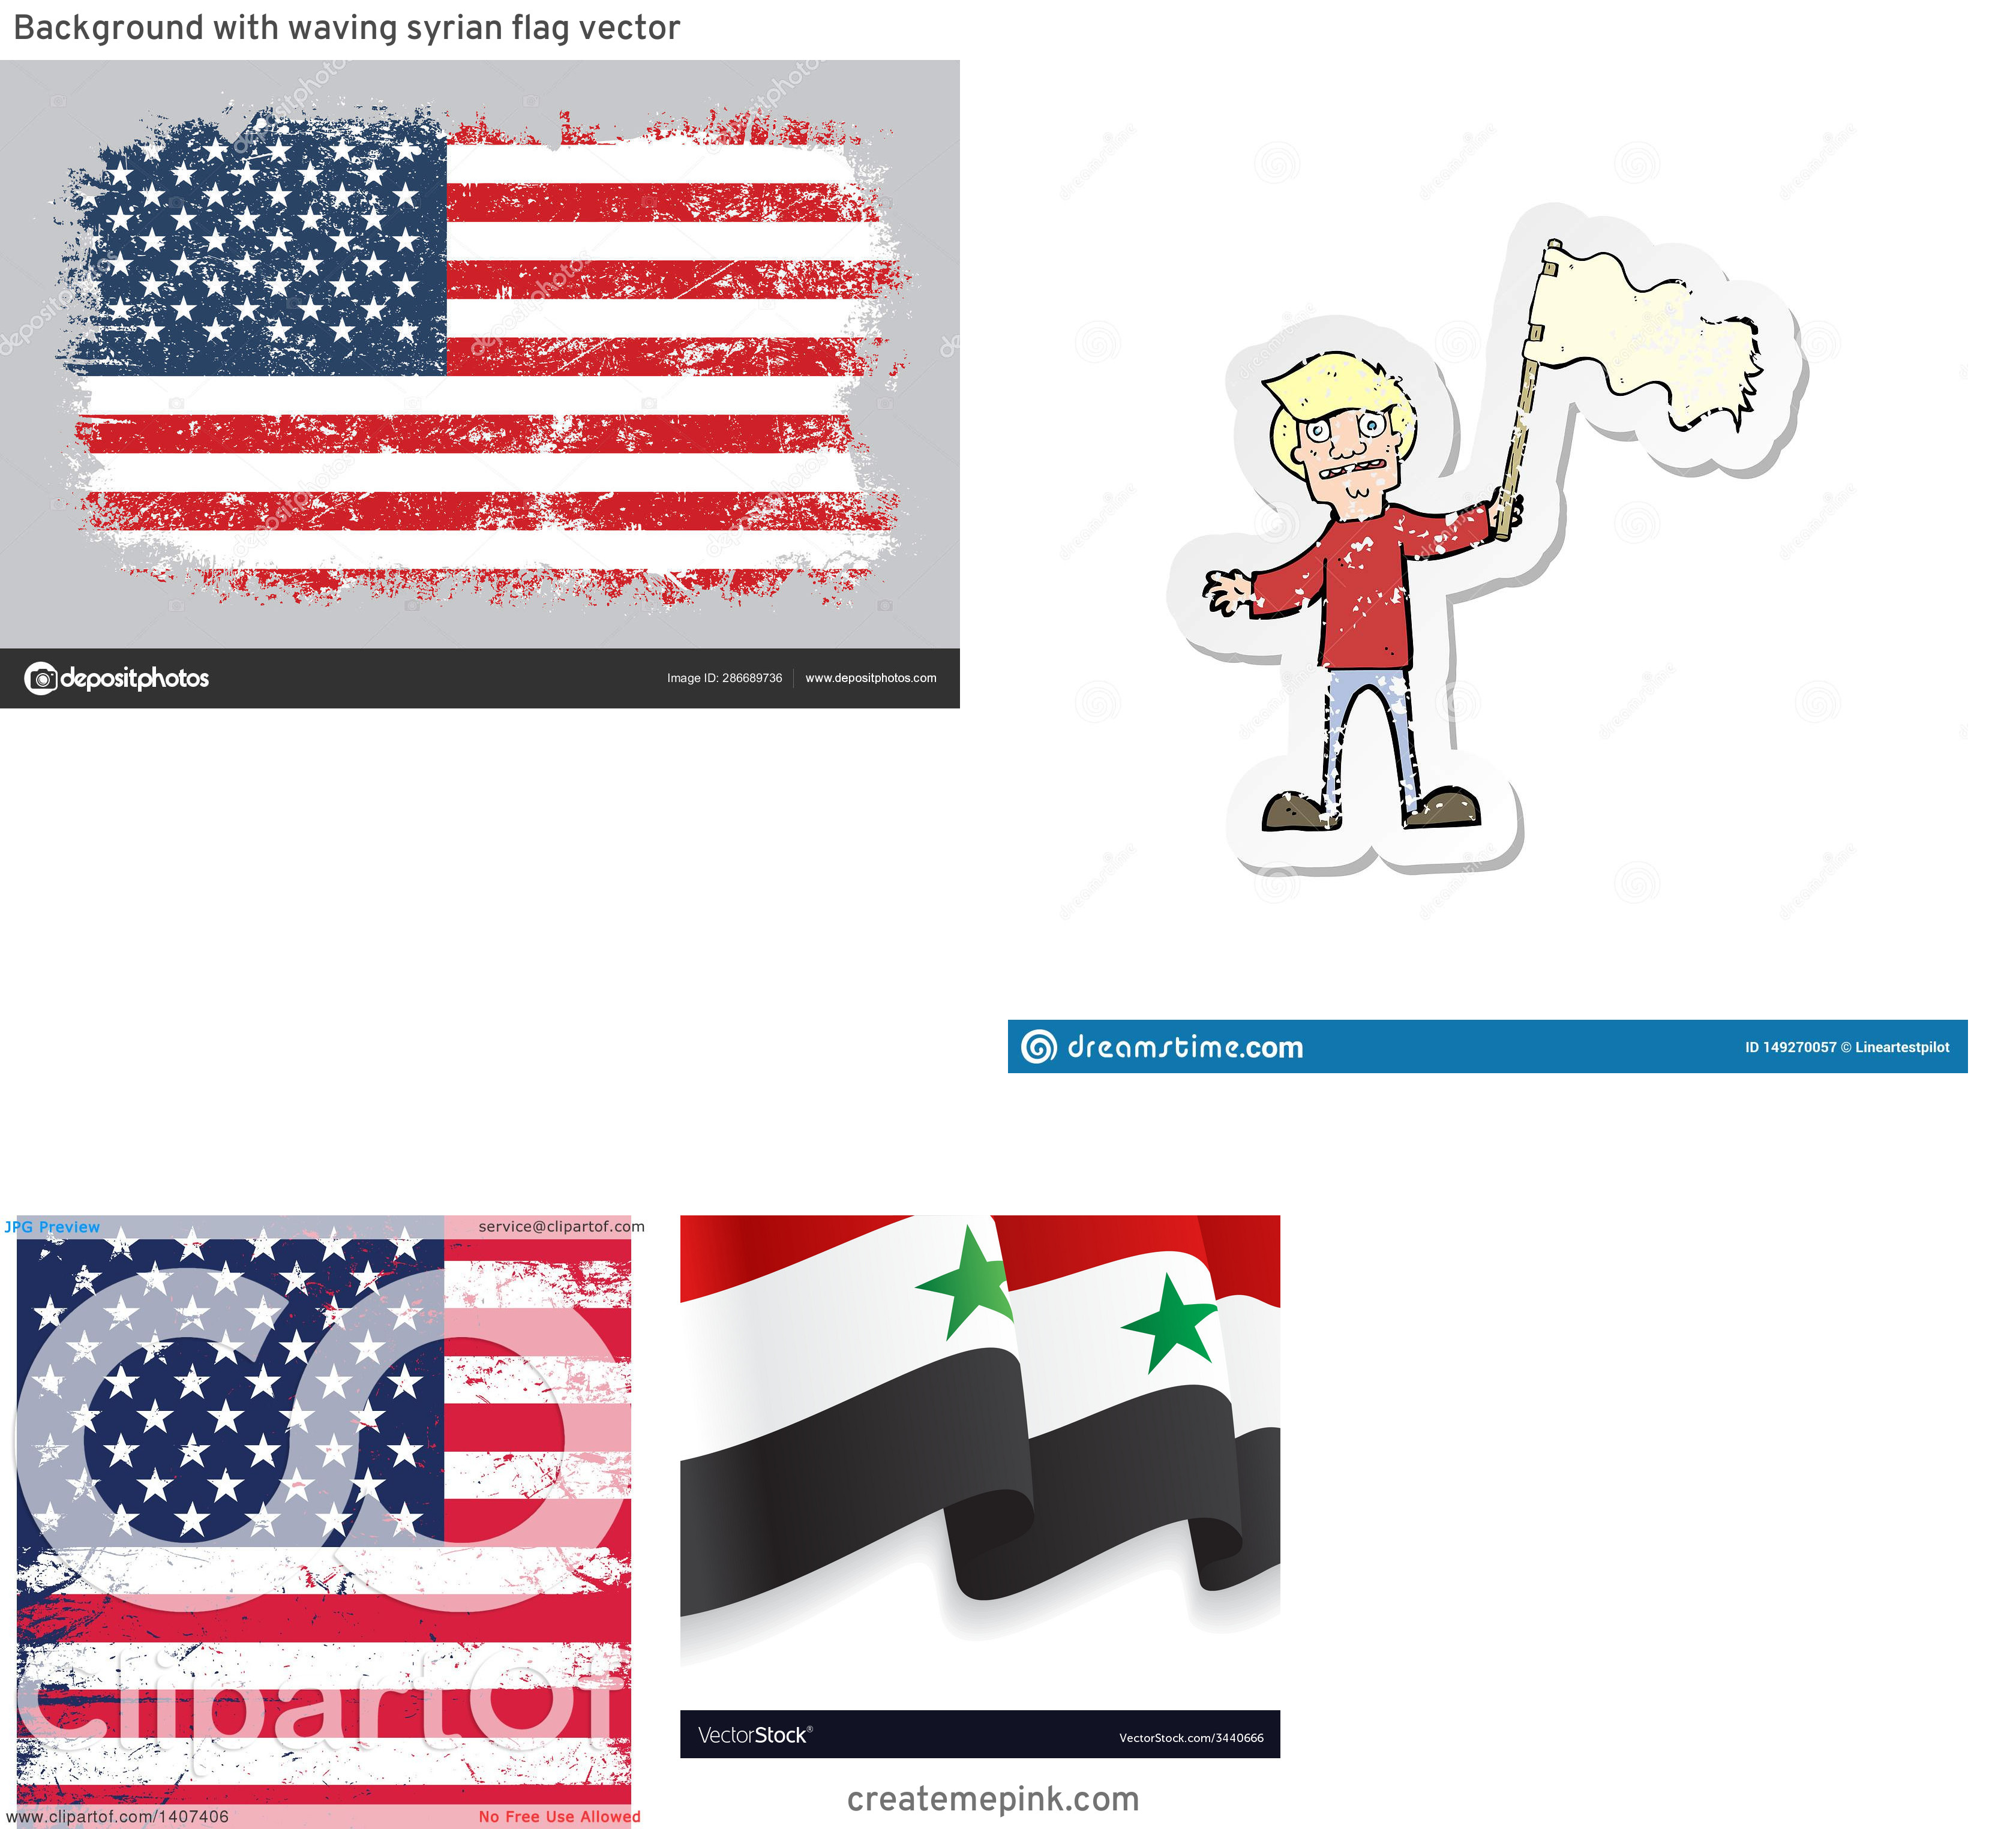 Waving Distressed Flag Vector: Background With Waving Syrian Flag Vector